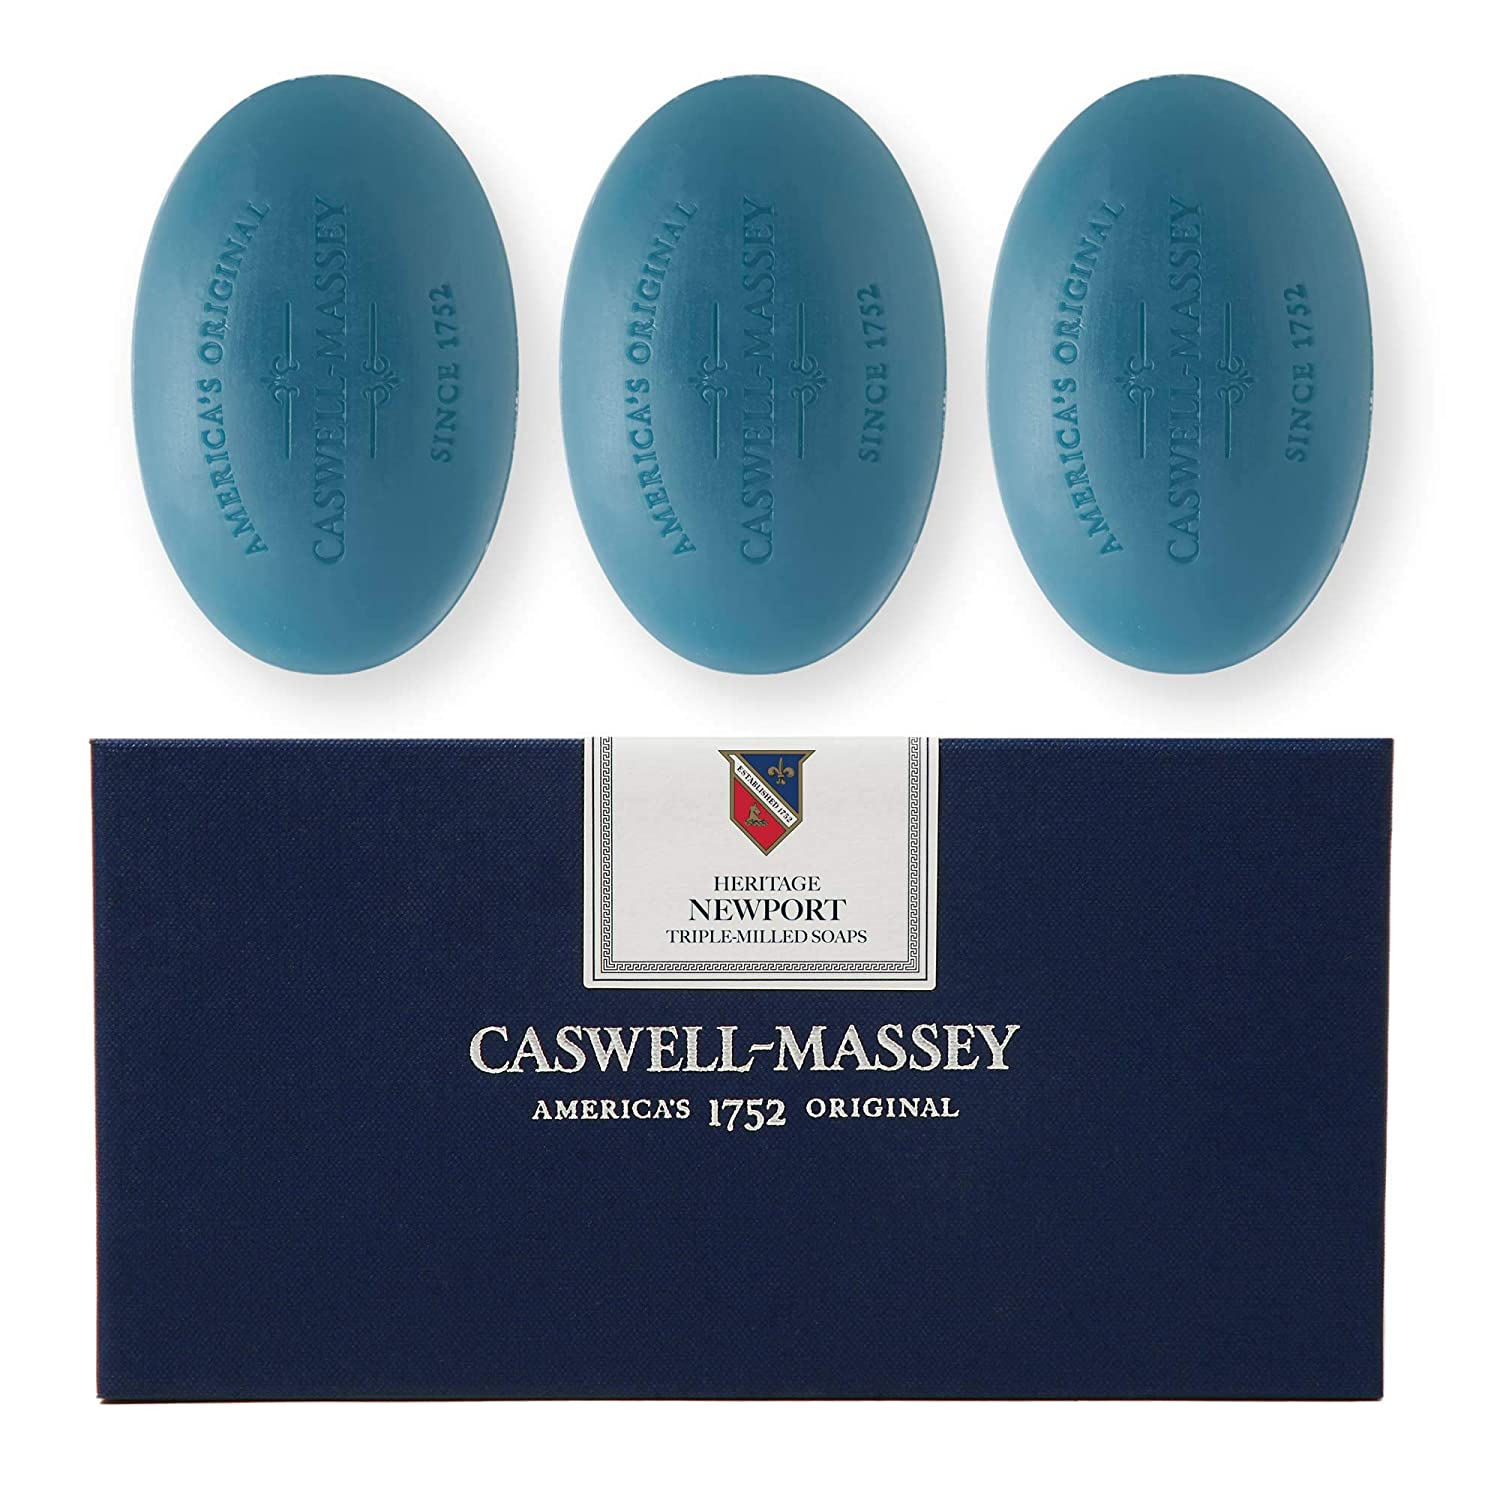 Caswell-Massey Triple Milled Luxury Bath Soap Newport Gift Set - Famed Fragrance - 5.8 Ounces Each, 3 Bars